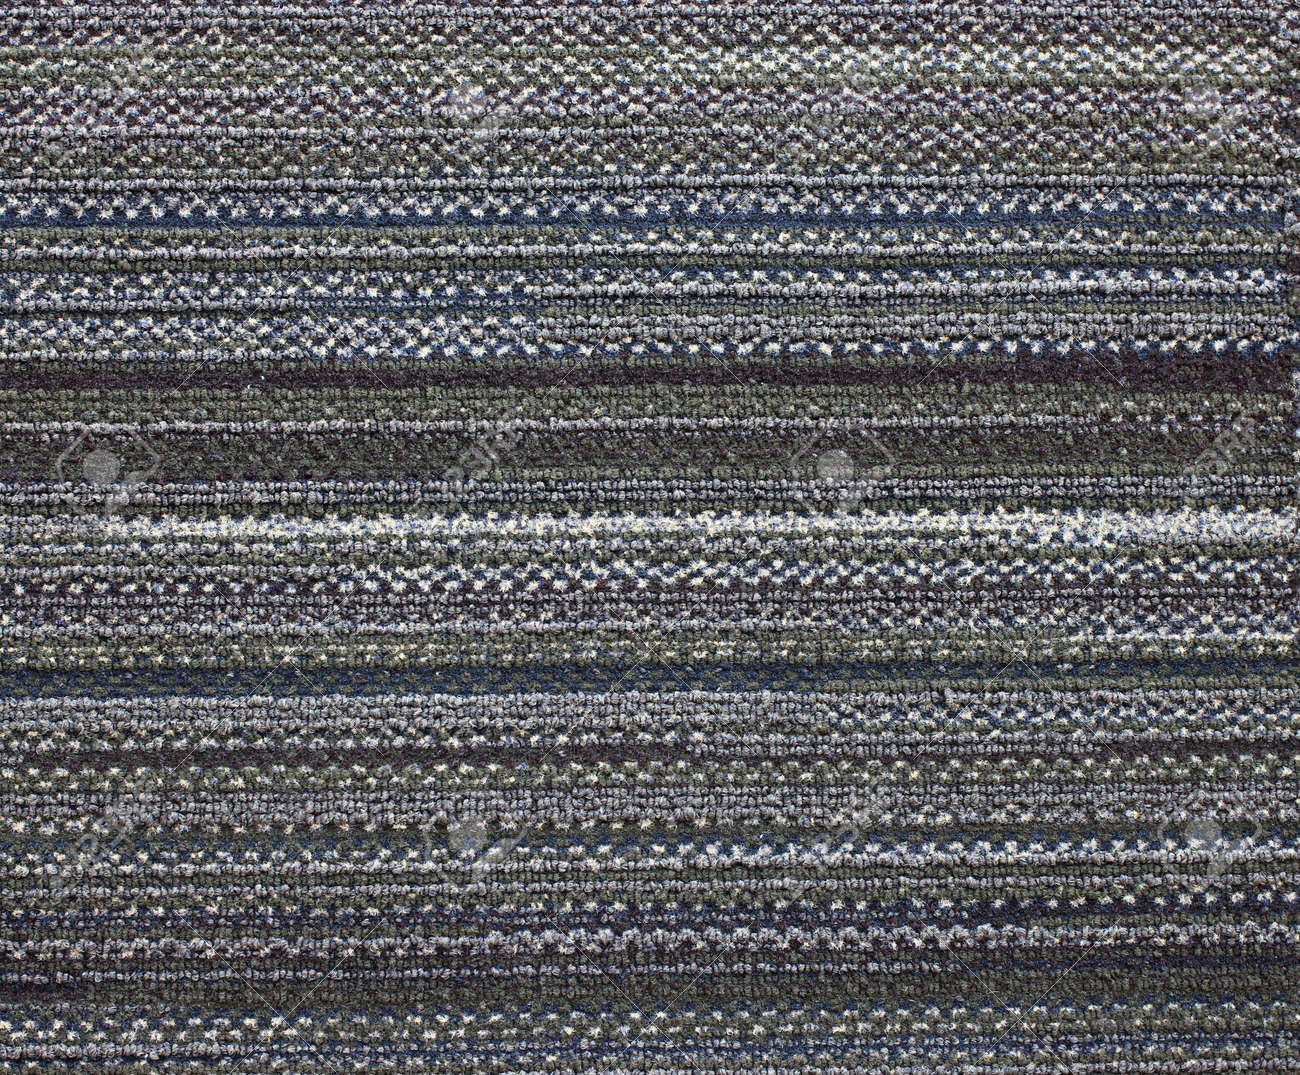 grey carpet texture background stock photo 20681475